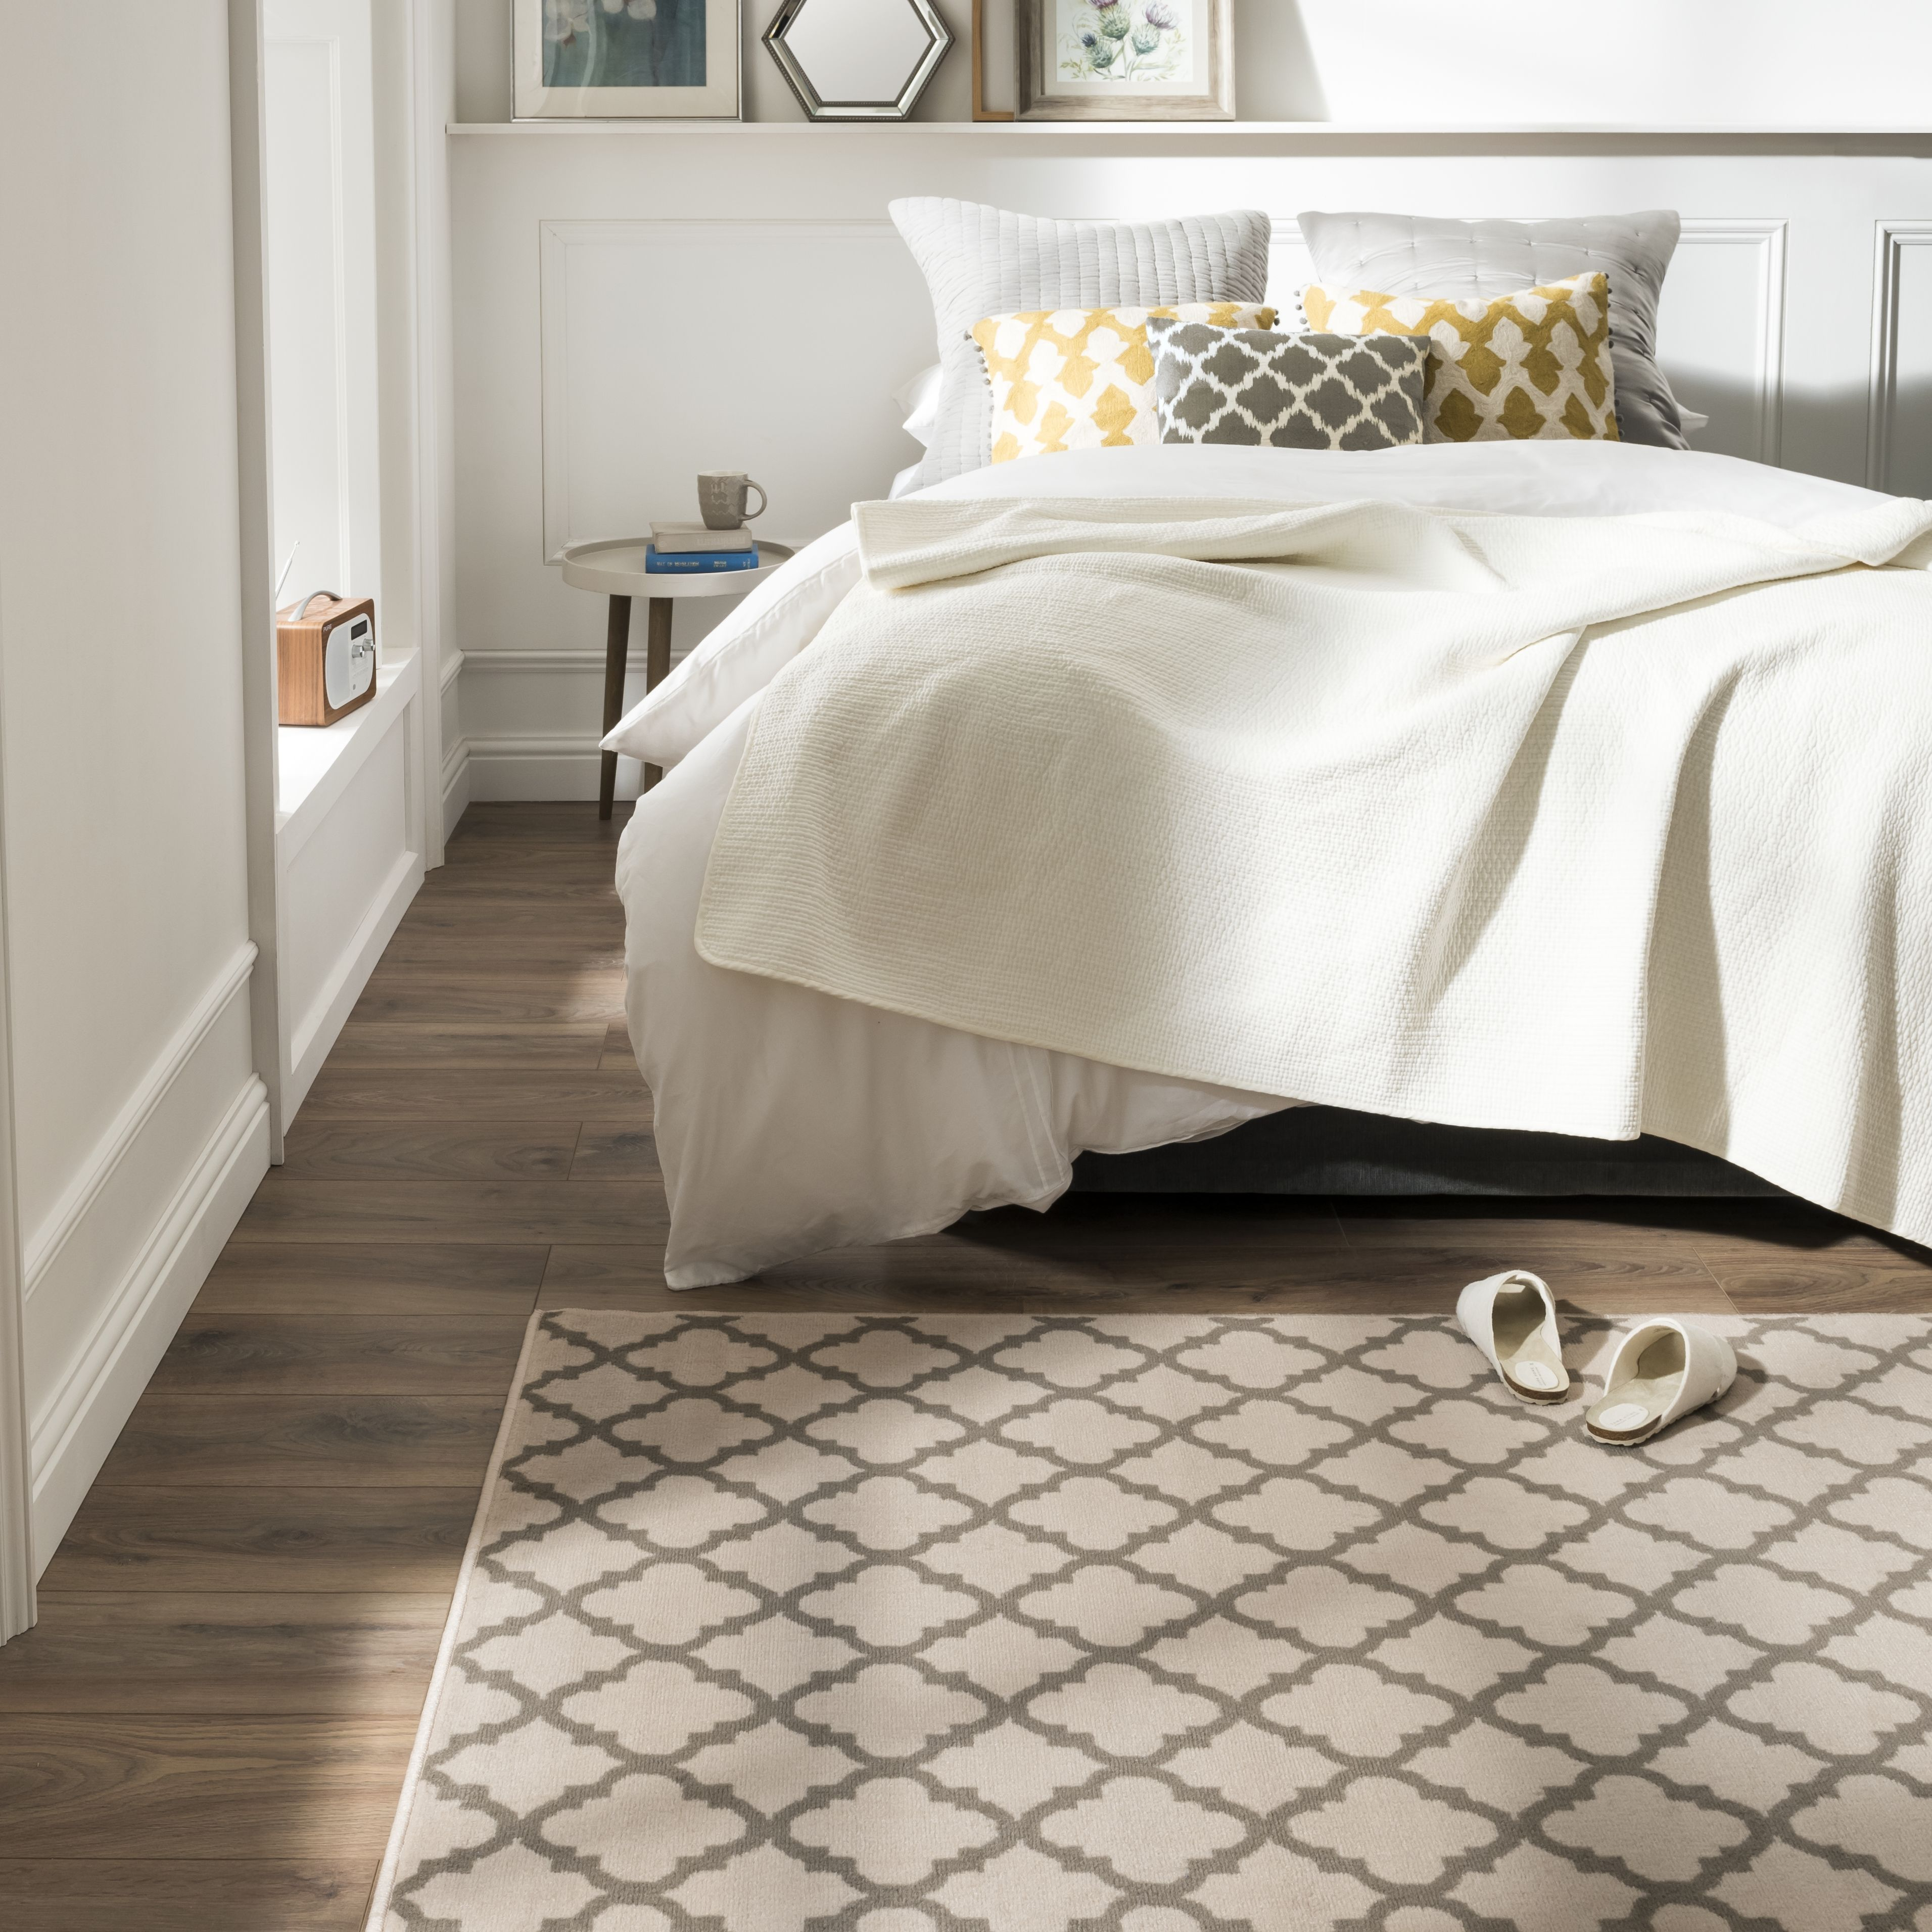 Maestro Tile Ivory Rug (With images) Taupe rug, Ivory